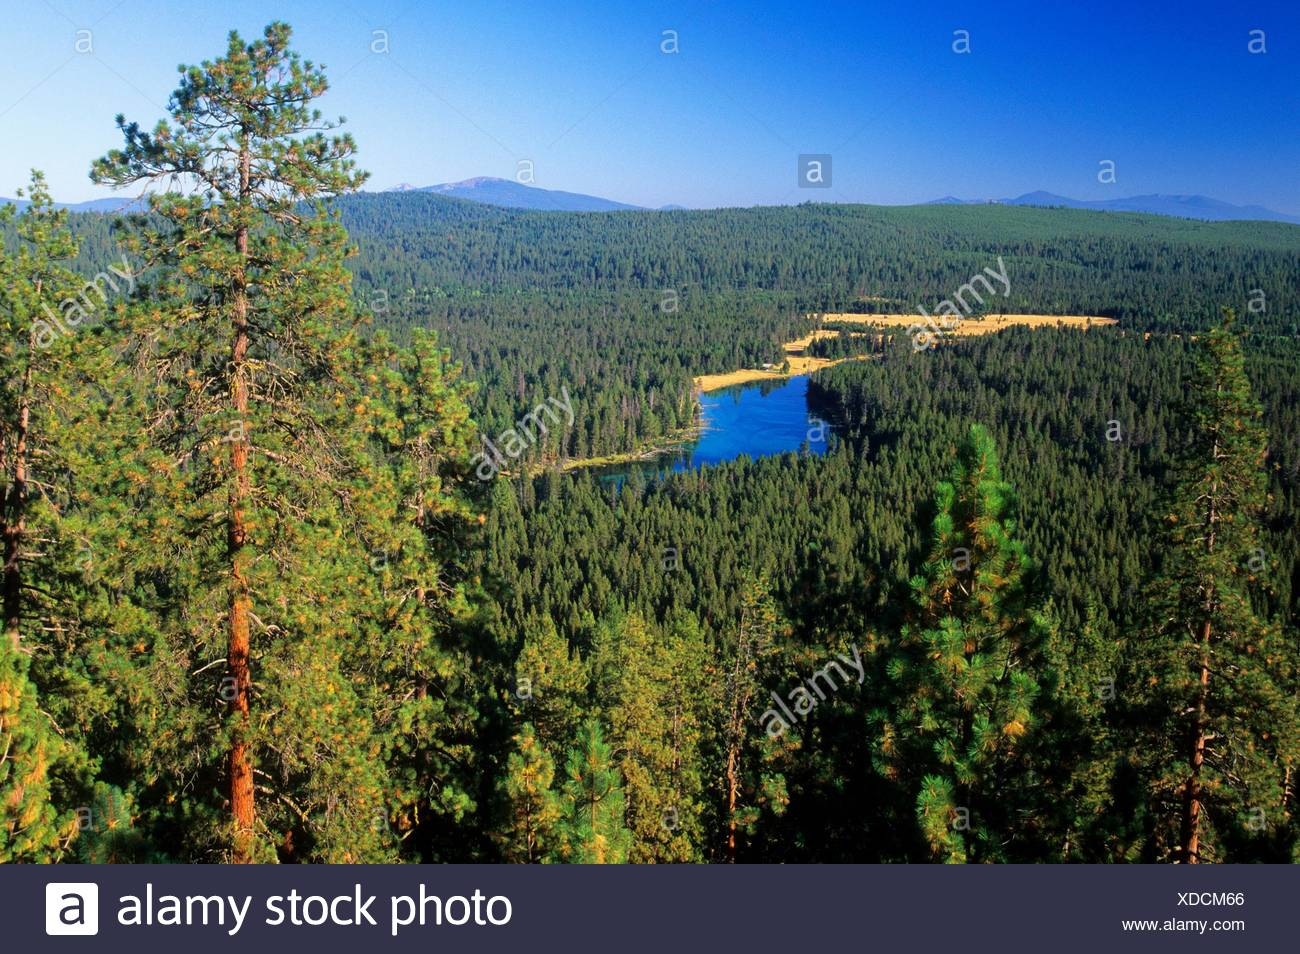 Spring Creek from Oux Kanee Viewpoint, Winema National Forest, Oregon. - Stock Image